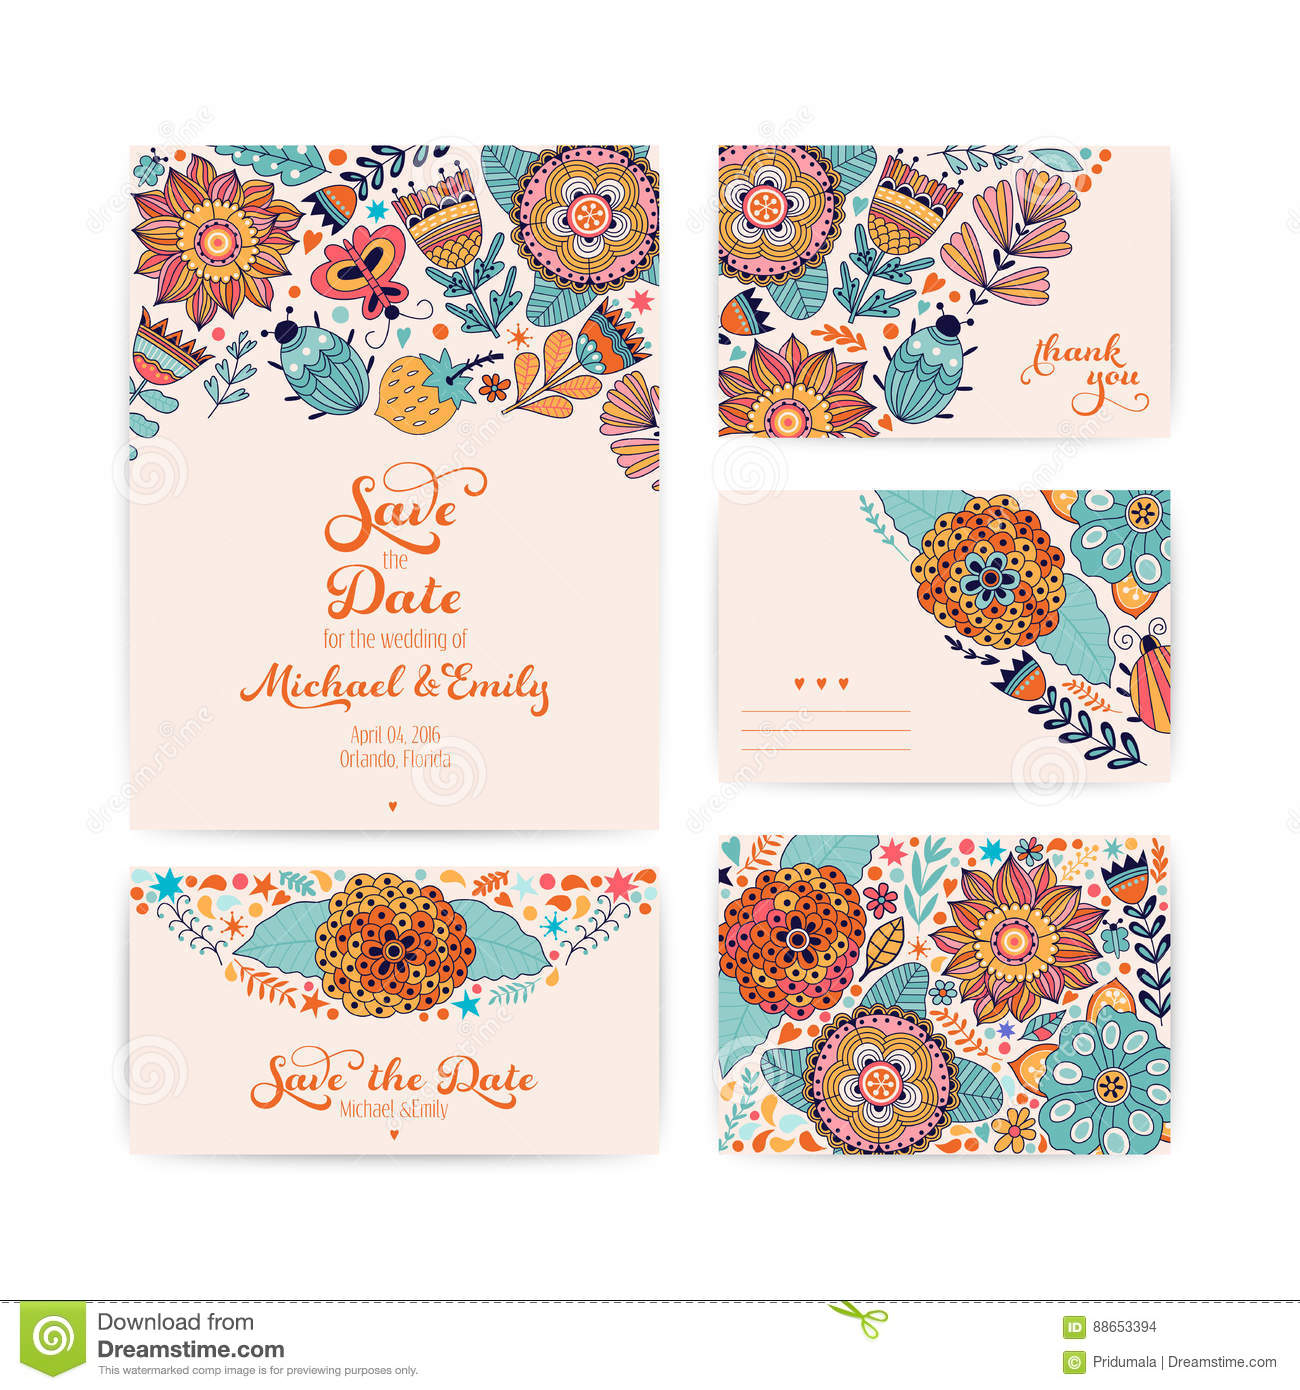 Wedding invitation template envelope thank you card stock vector download wedding invitation template envelope thank you card stock vector illustration of flora spiritdancerdesigns Image collections